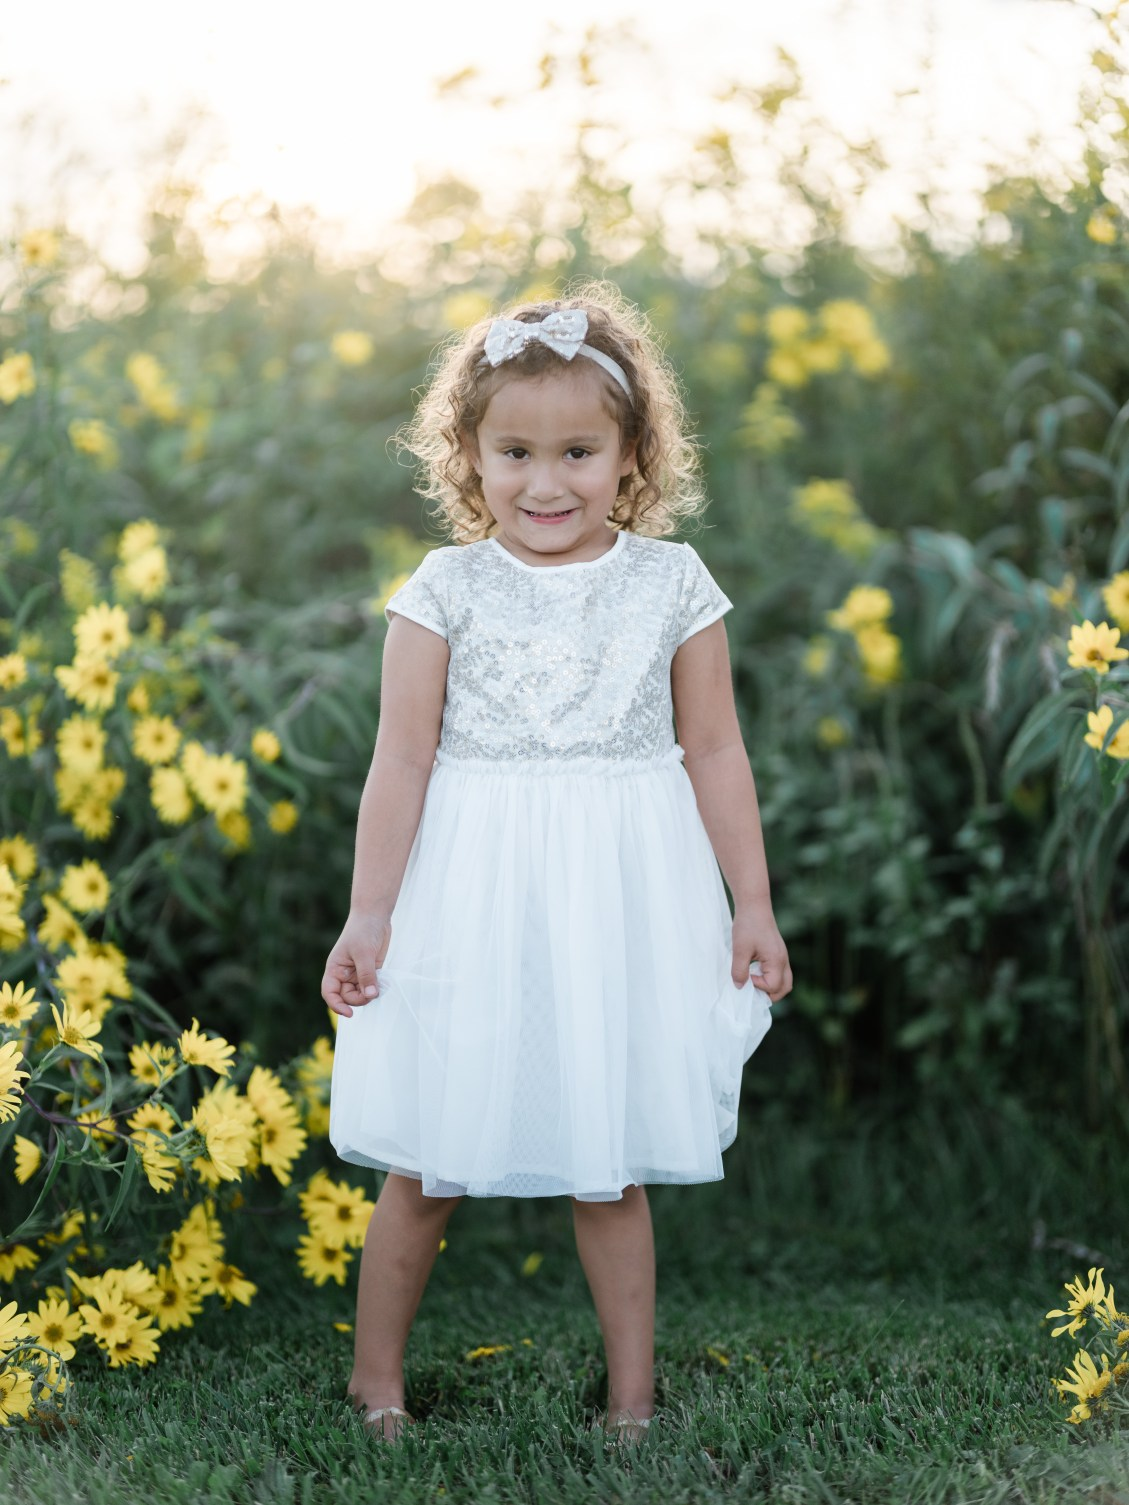 Family Photo Session in Chicago With Abigail Joyce Photography